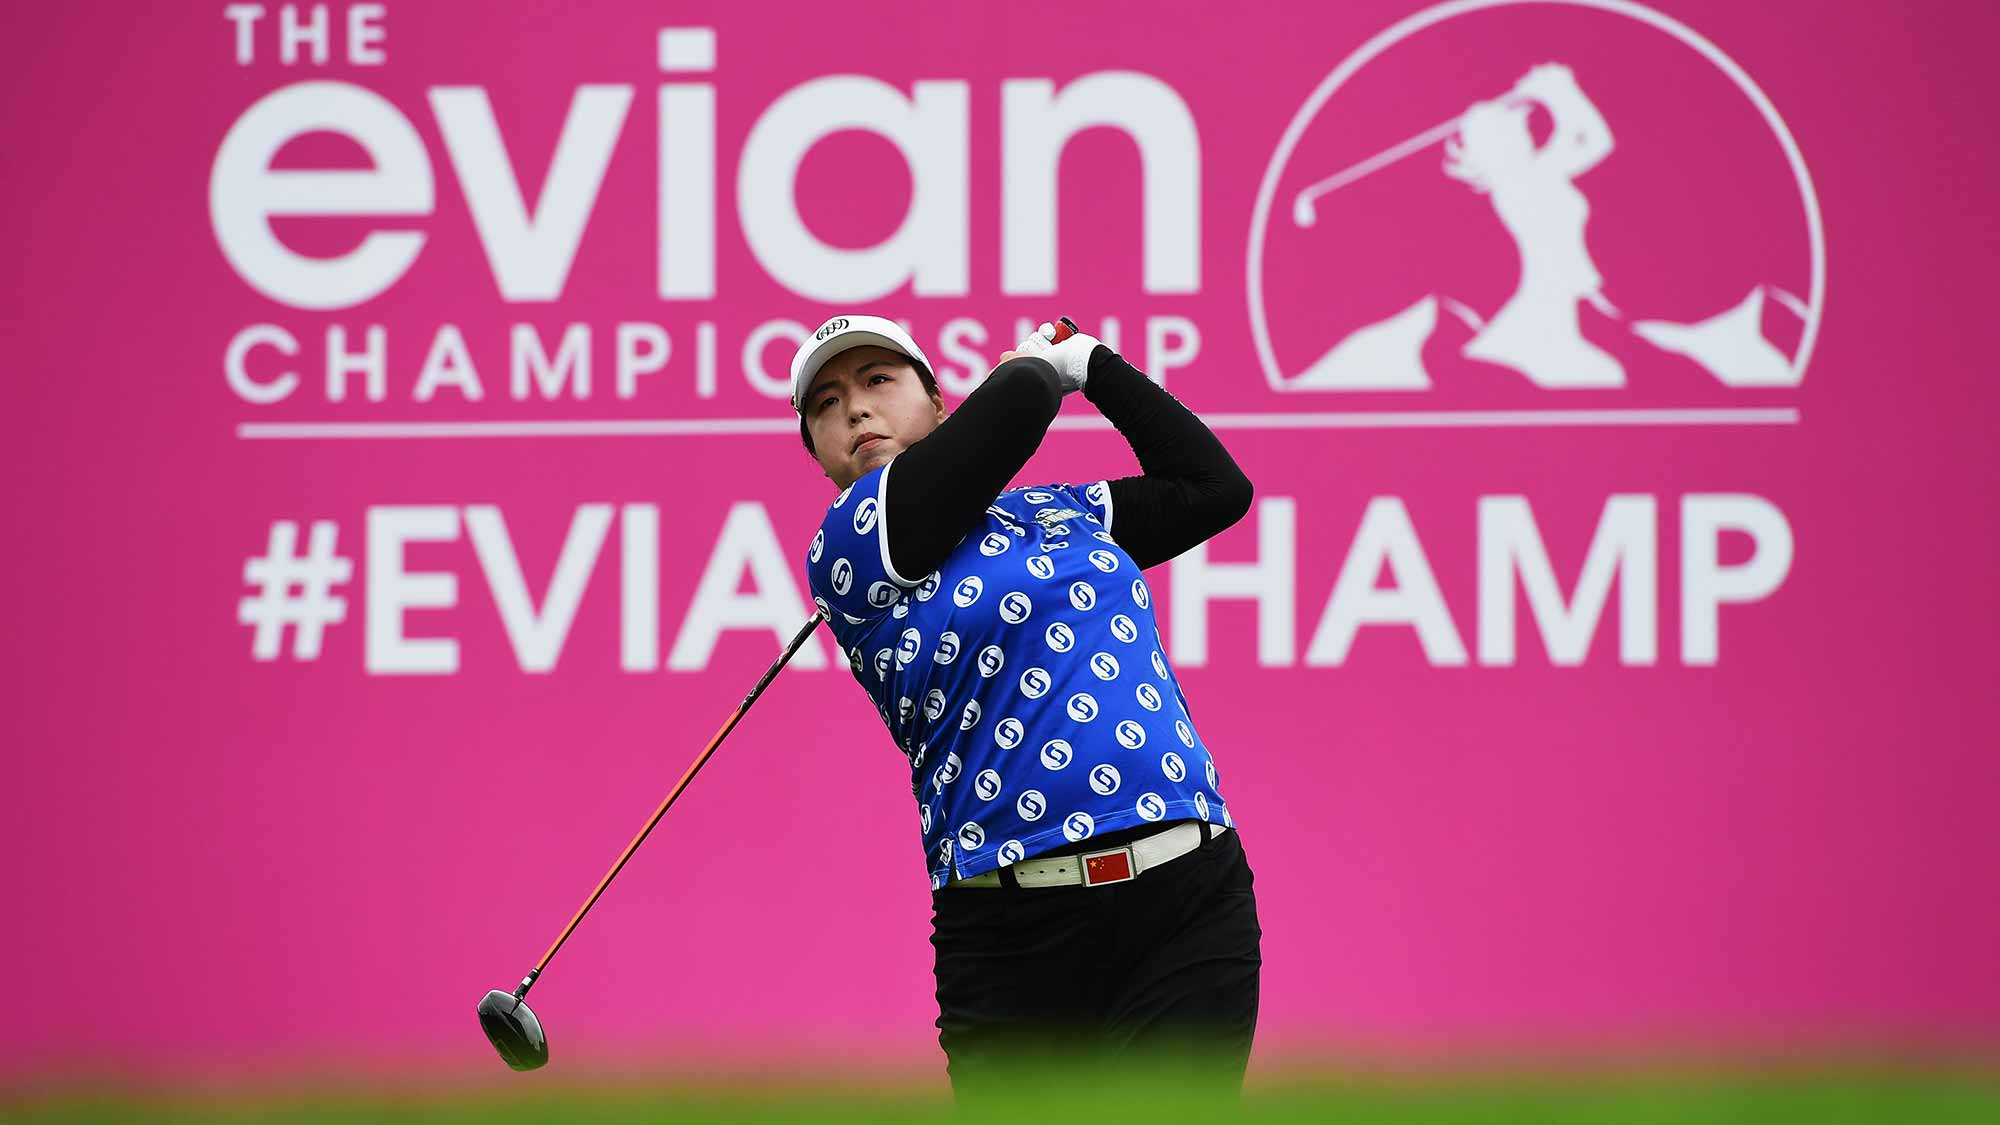 Shanshan Feng of China plays a shot during the second round of The Evian Championship